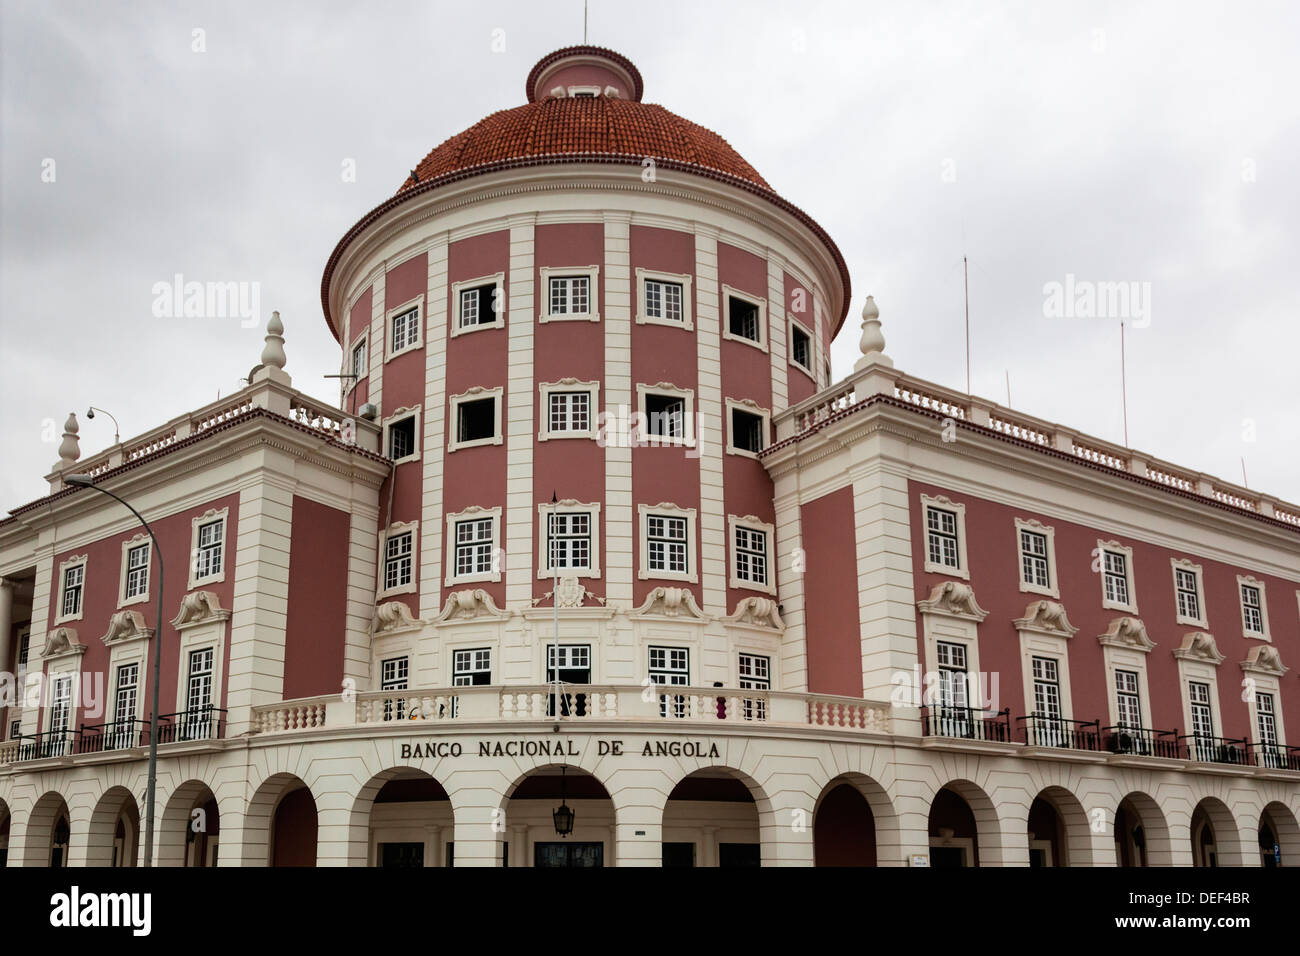 Africa, Angola, Luanda. National Bank of Angola. - Stock Image